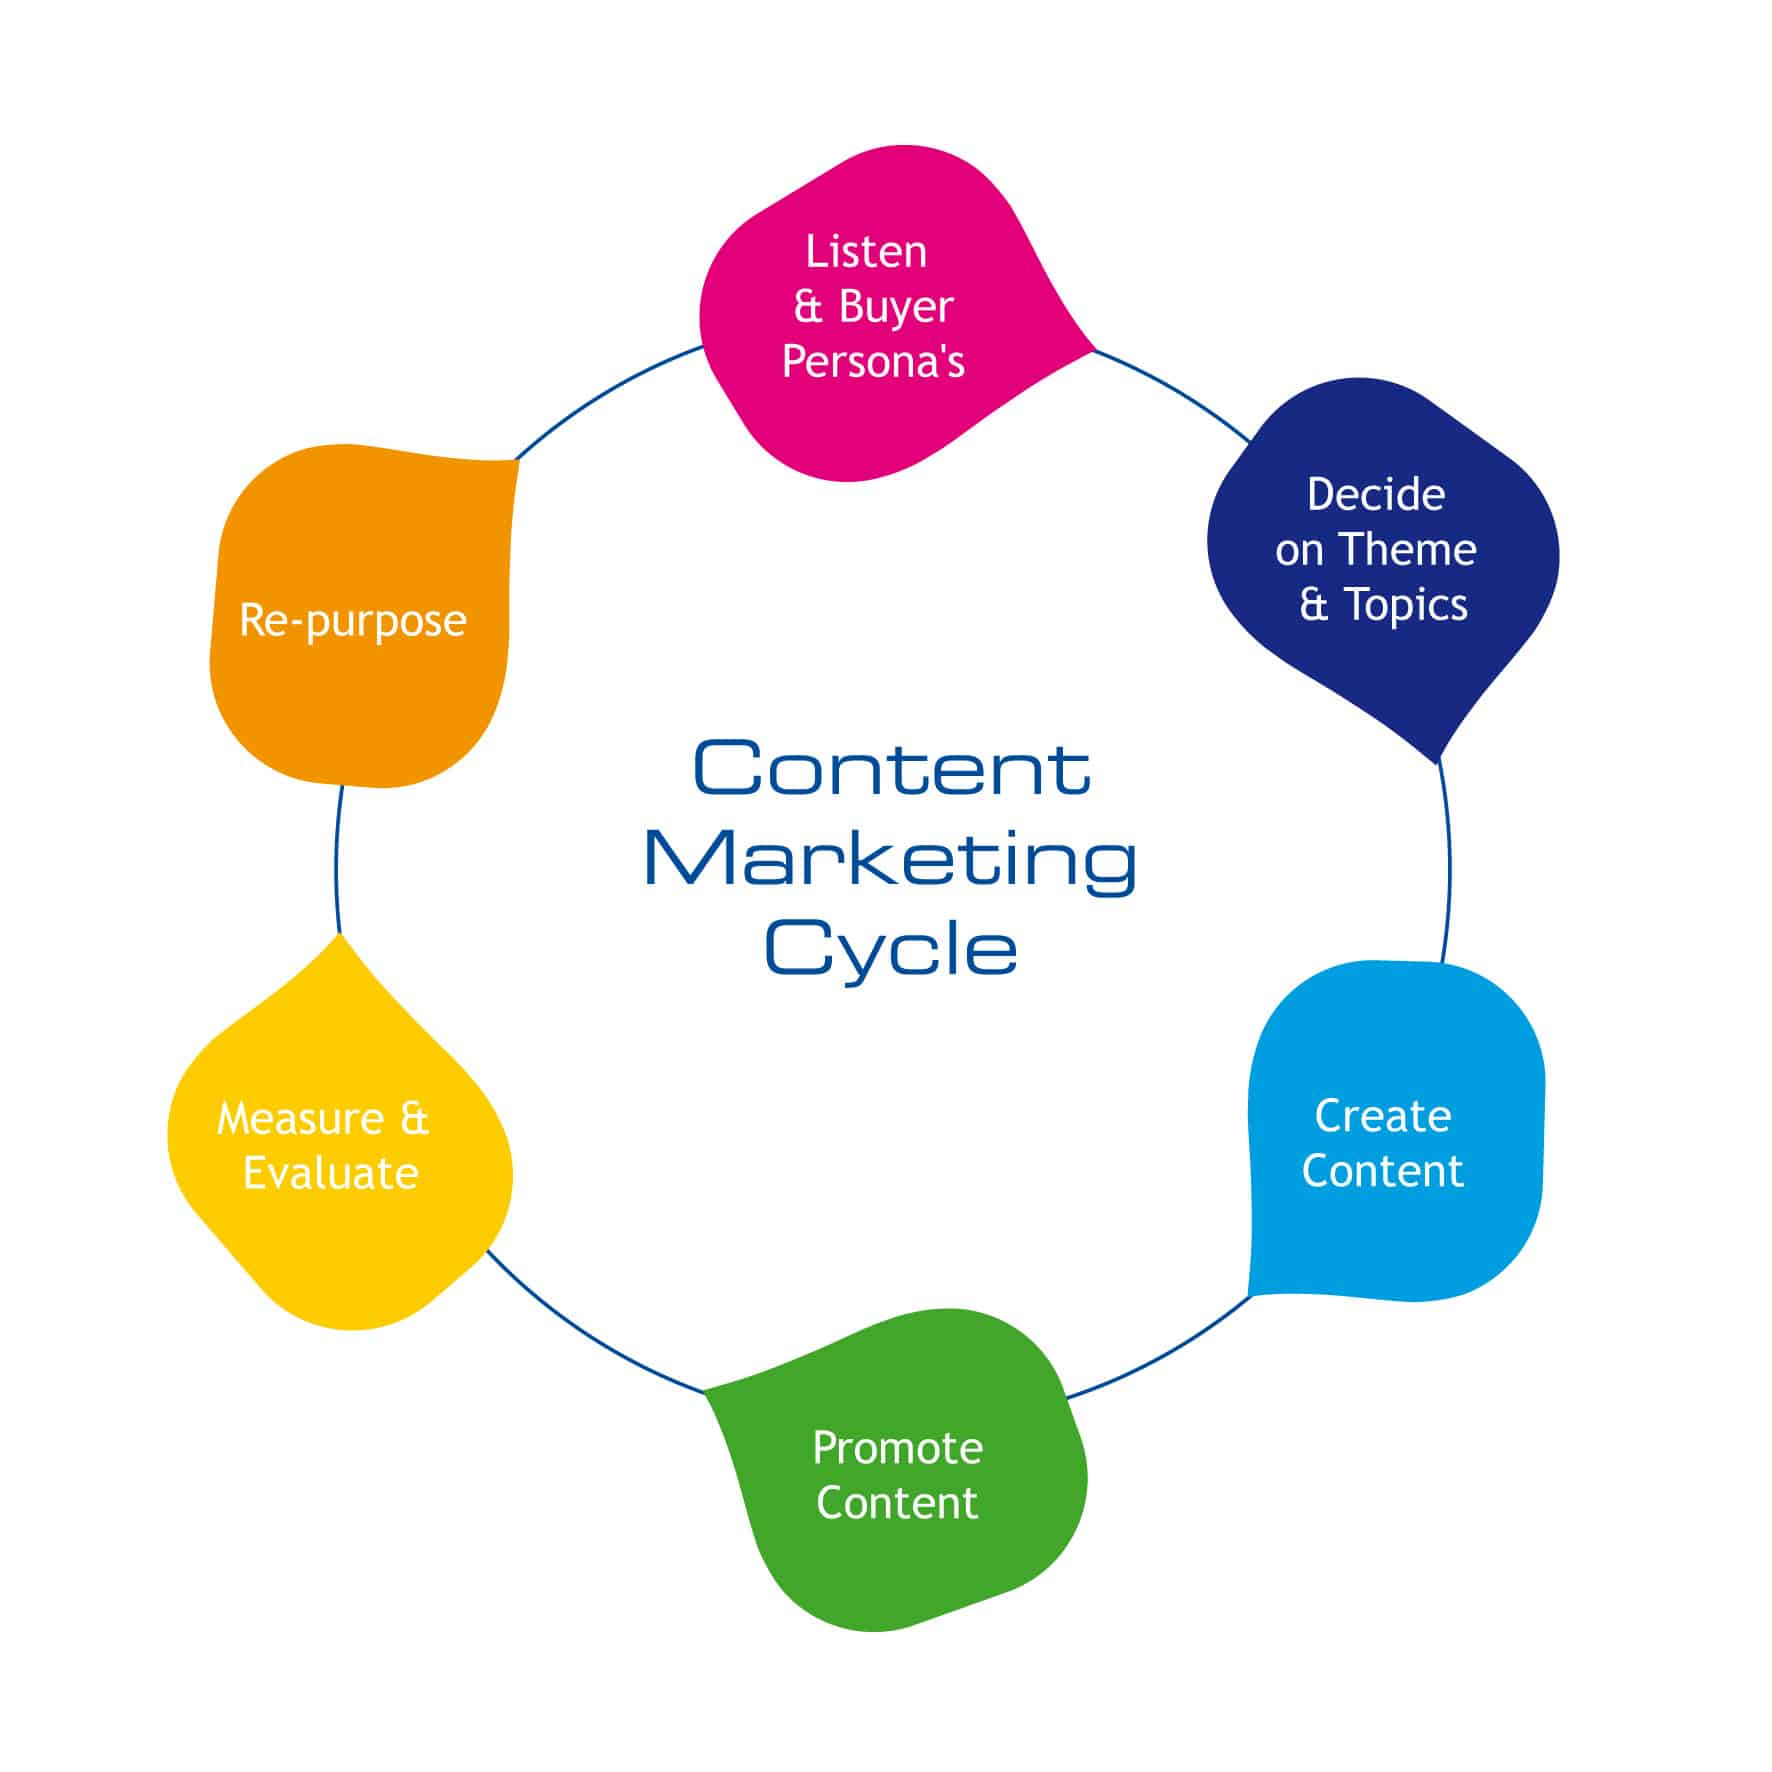 Content marketing cycle image for What Is A Content Management System blog